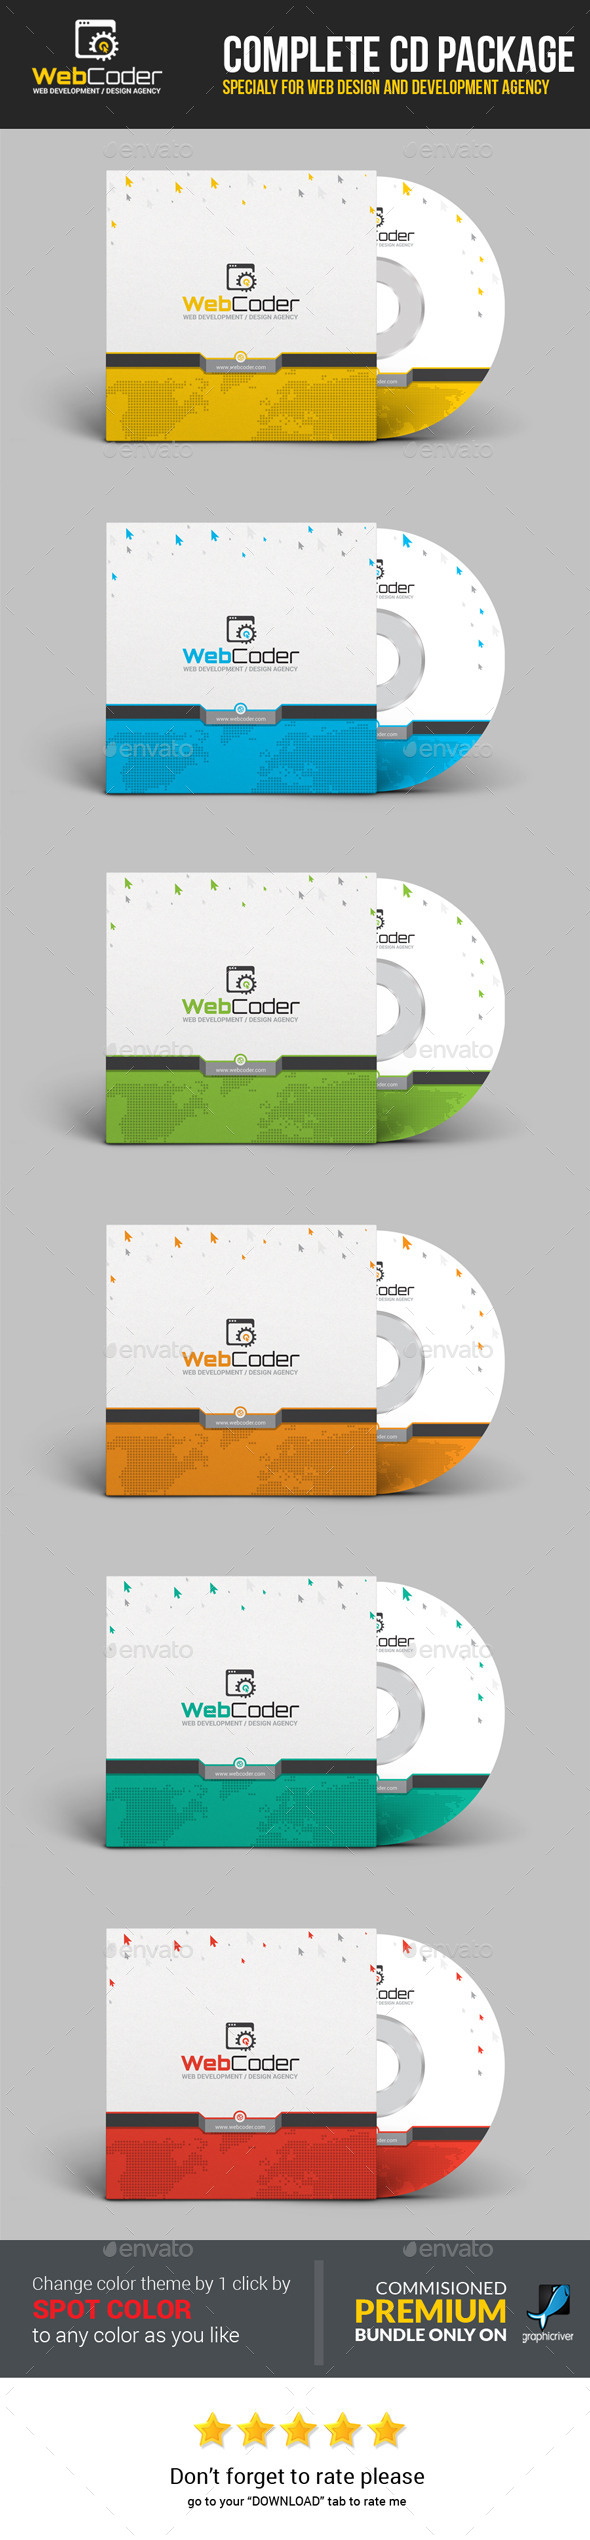 GraphicRiver Web Coder Web Design Agency CD Package 11812806